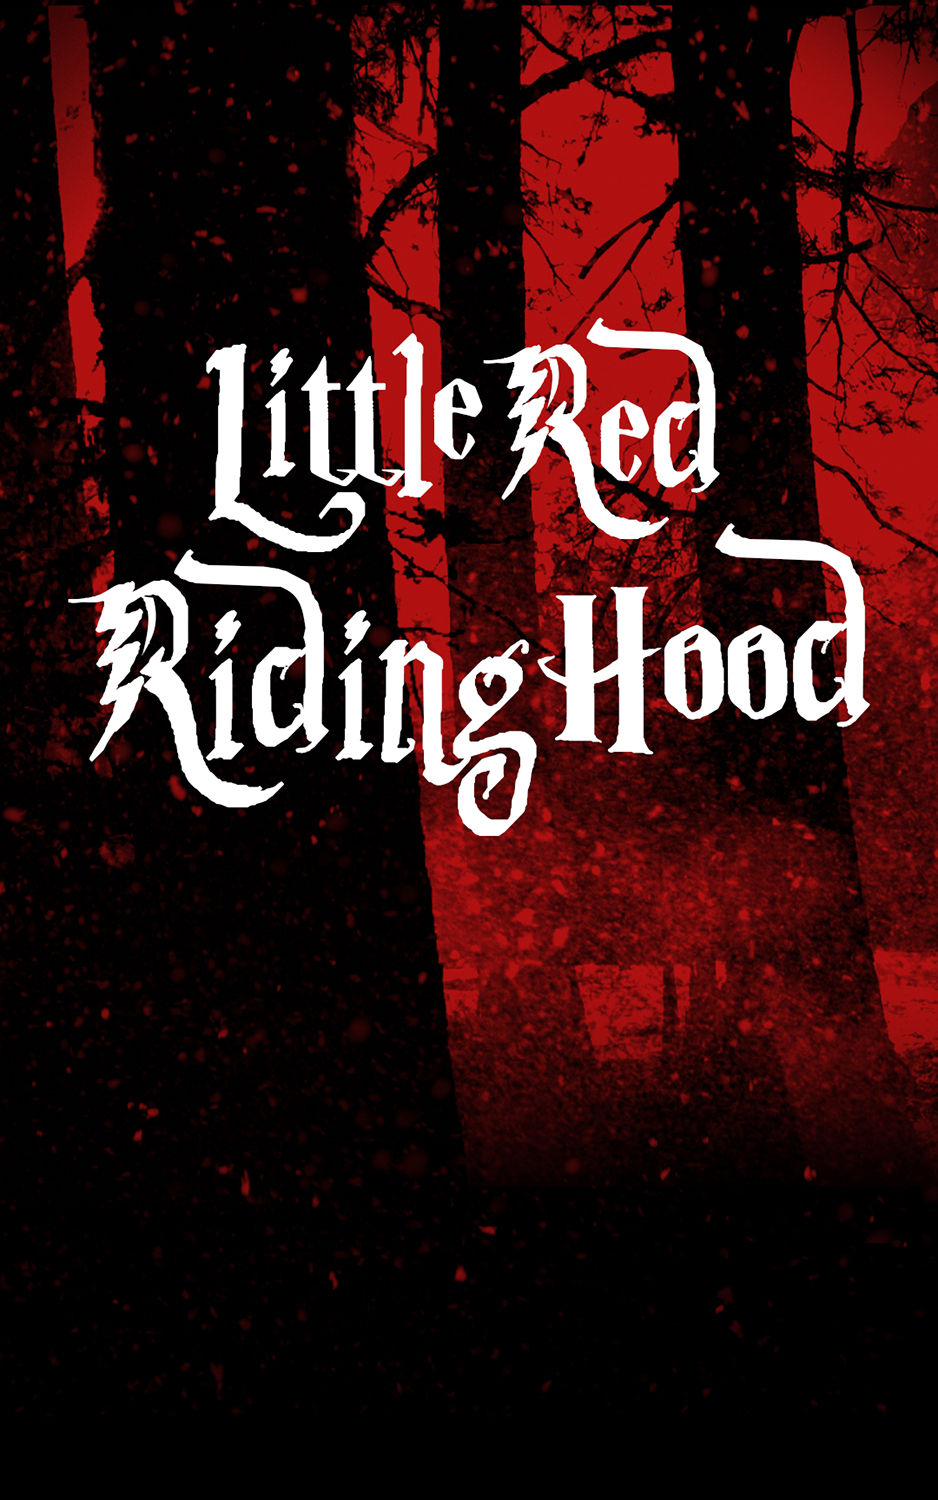 Little Red Riding Hood, Short Film